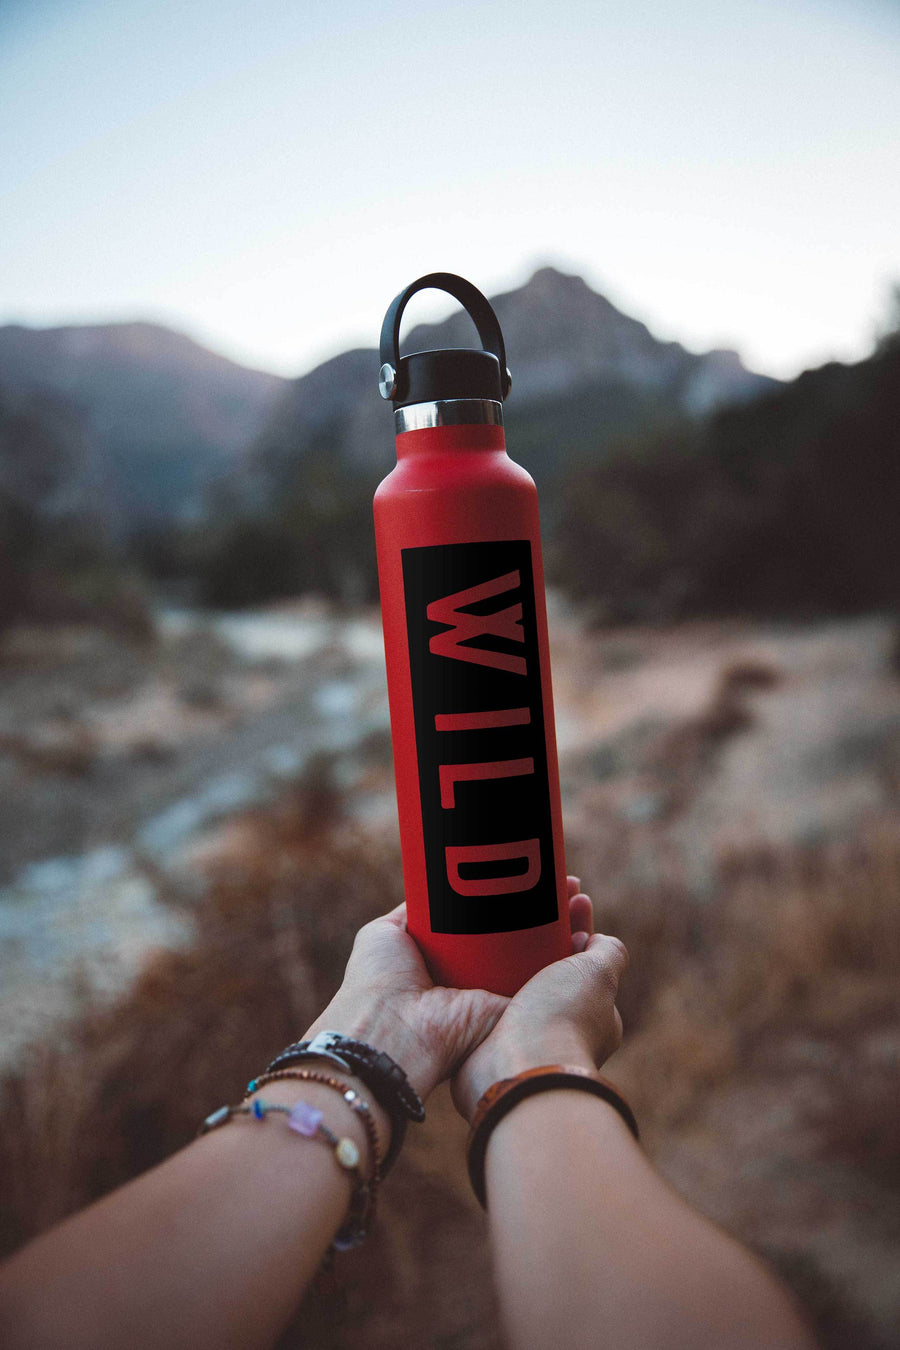 WILD Decal - Wondery, A Parks Apparel Brand